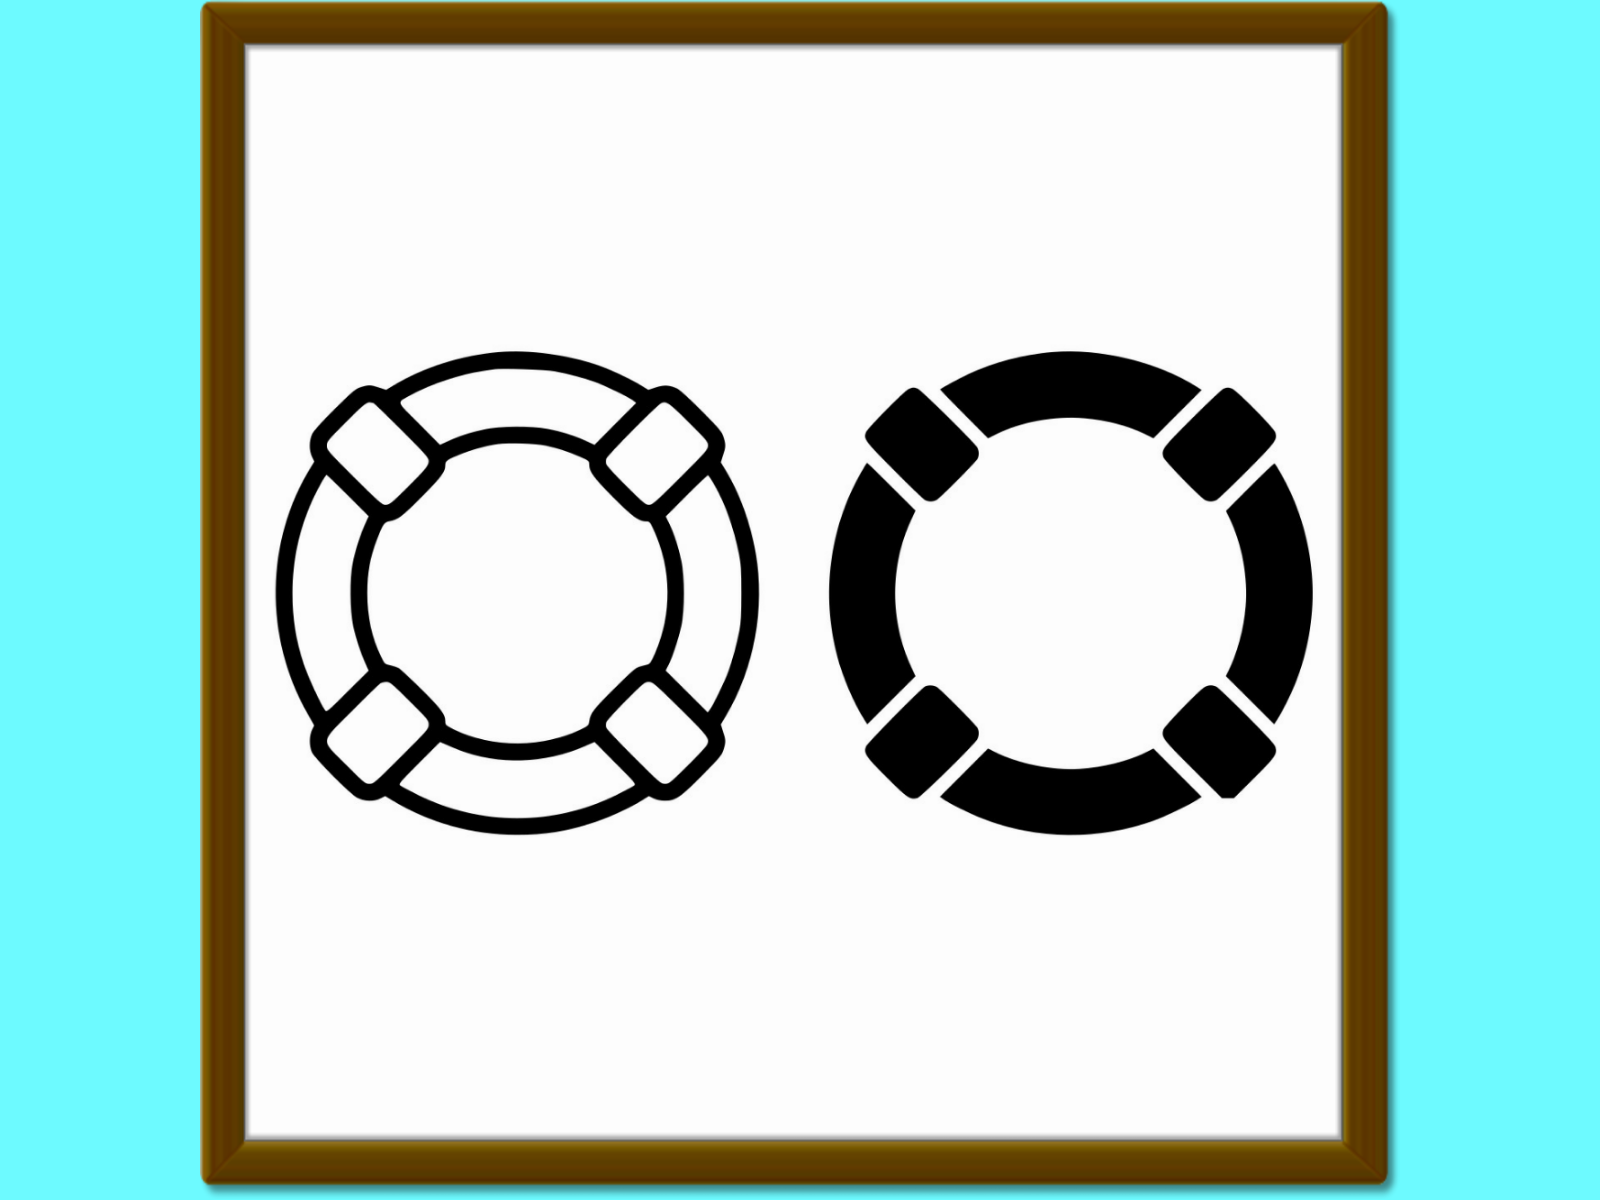 Download Free Lifebuoy Line And Glyph Icon Sos Vector Graphic By Anrasoft for Cricut Explore, Silhouette and other cutting machines.